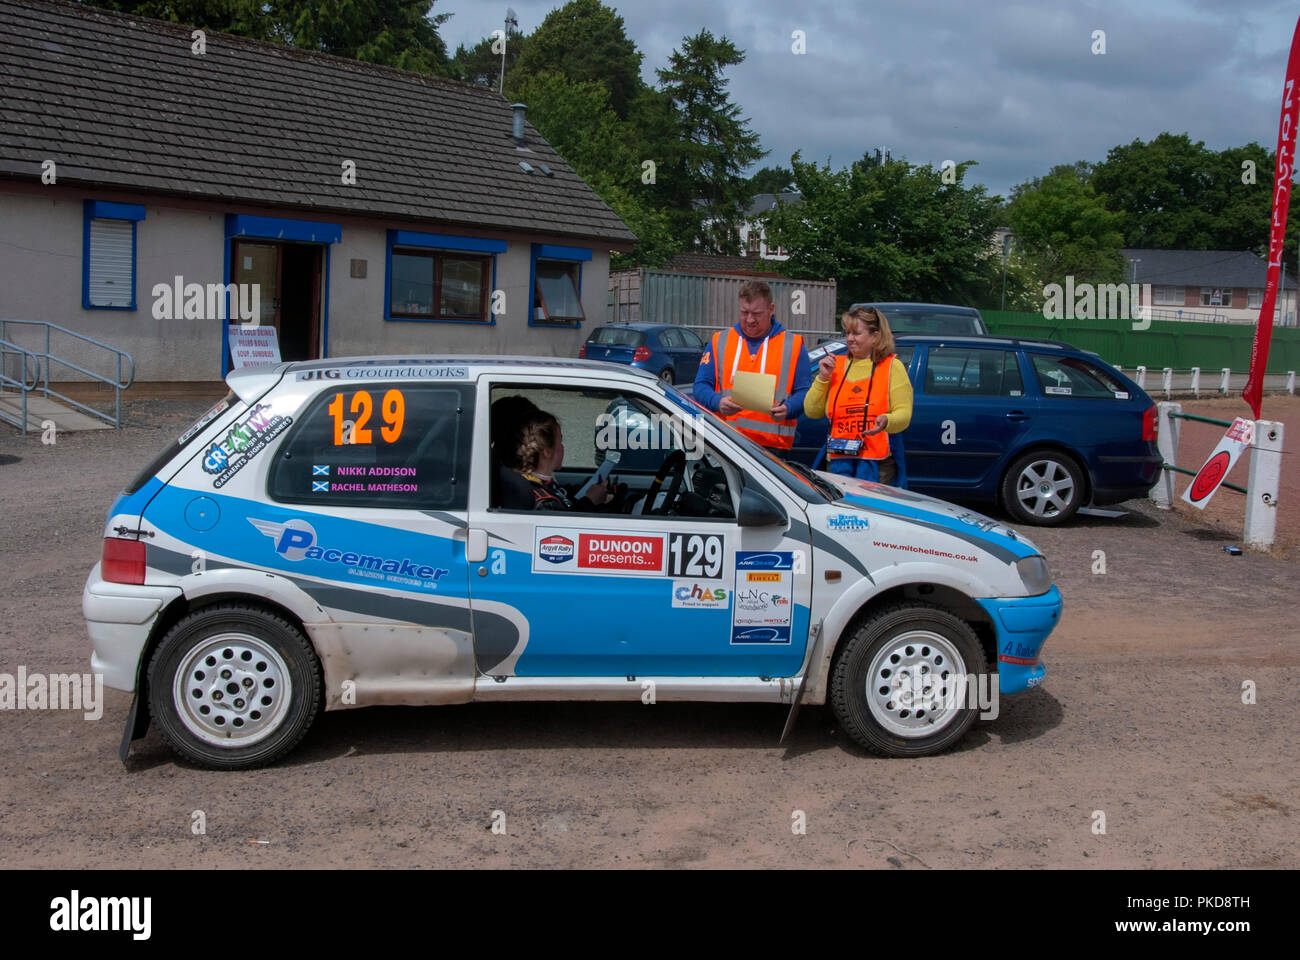 Peugeot 106 High Resolution Stock Photography And Images Alamy